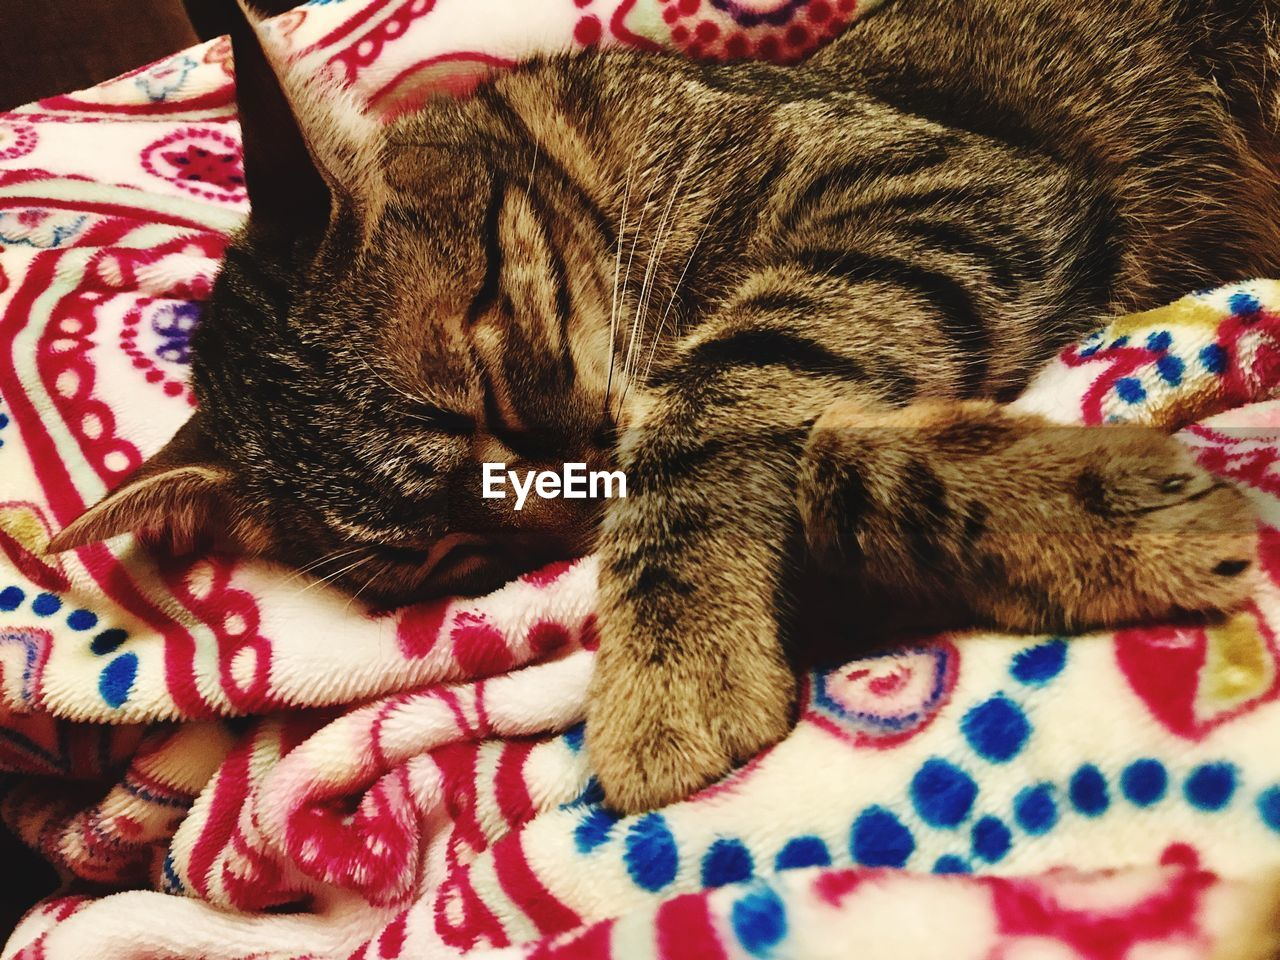 pets, cat, domestic cat, domestic, domestic animals, relaxation, feline, mammal, animal themes, animal, bed, one animal, furniture, vertebrate, resting, indoors, sleeping, close-up, lying down, whisker, no people, tabby